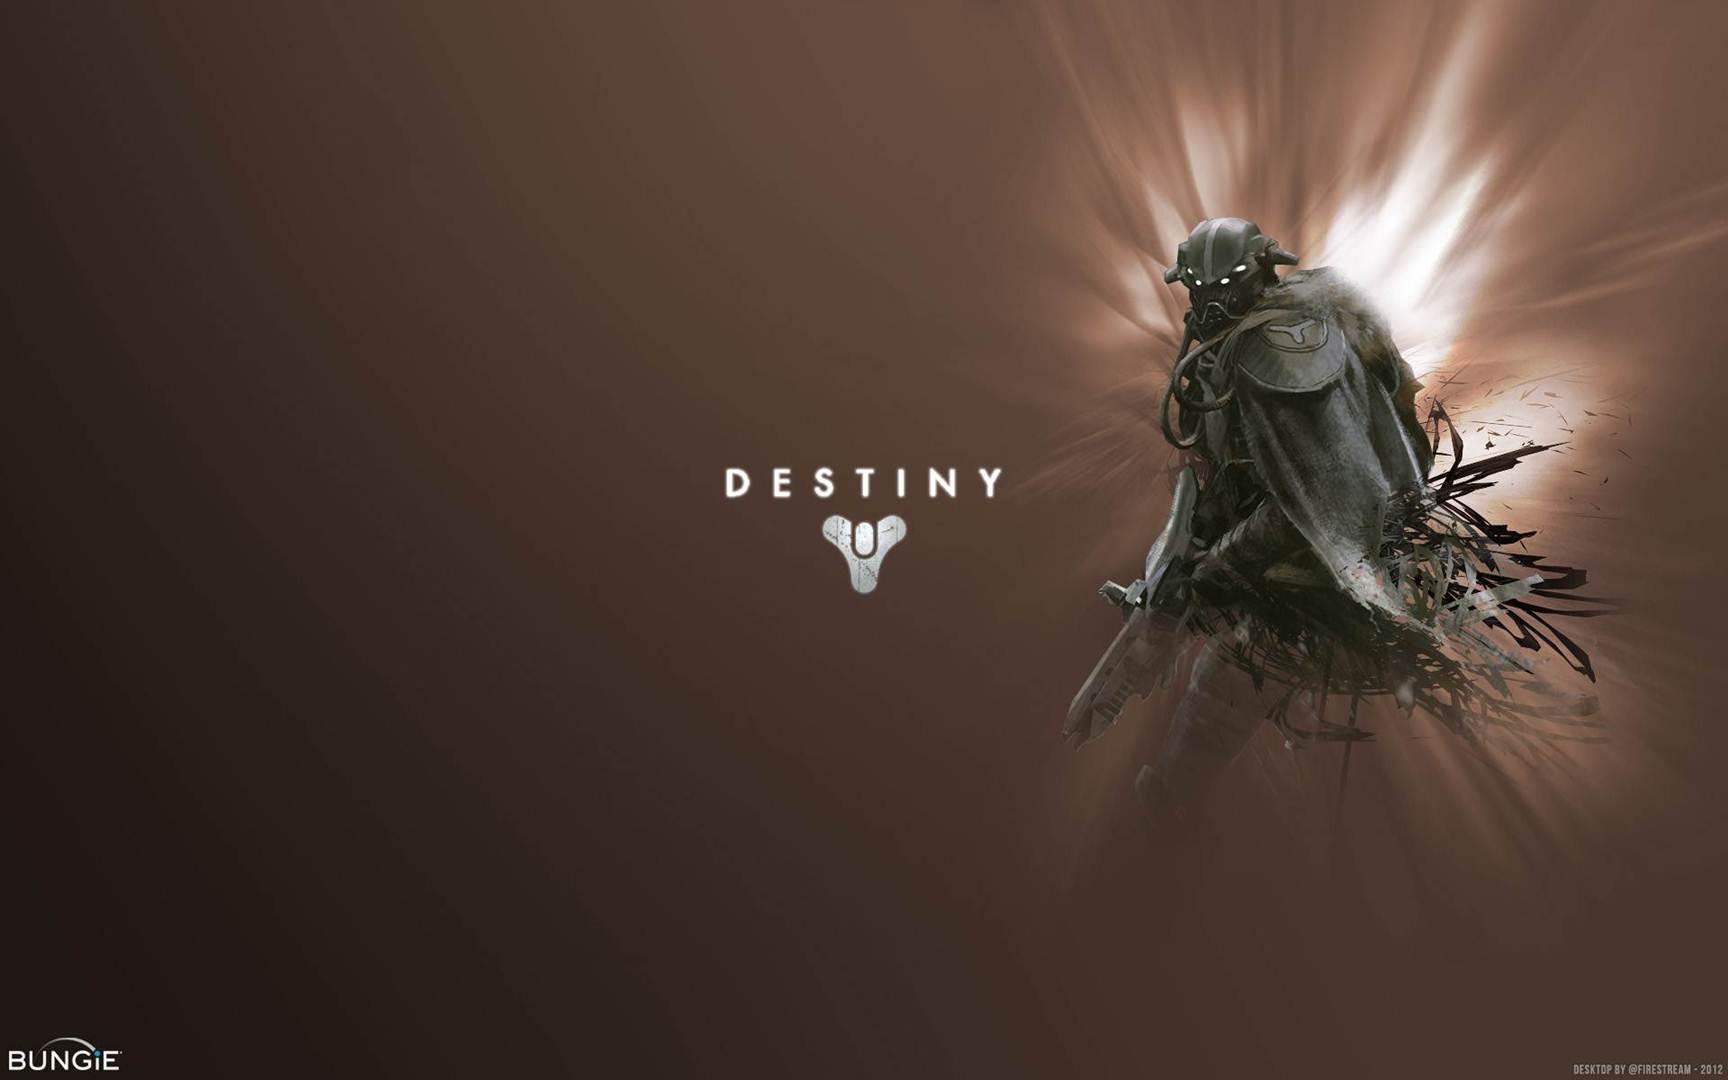 Bungie-Destiny-http-www-cartoonography-com-bungie-destiny-html-wallpaper-wpc9003238